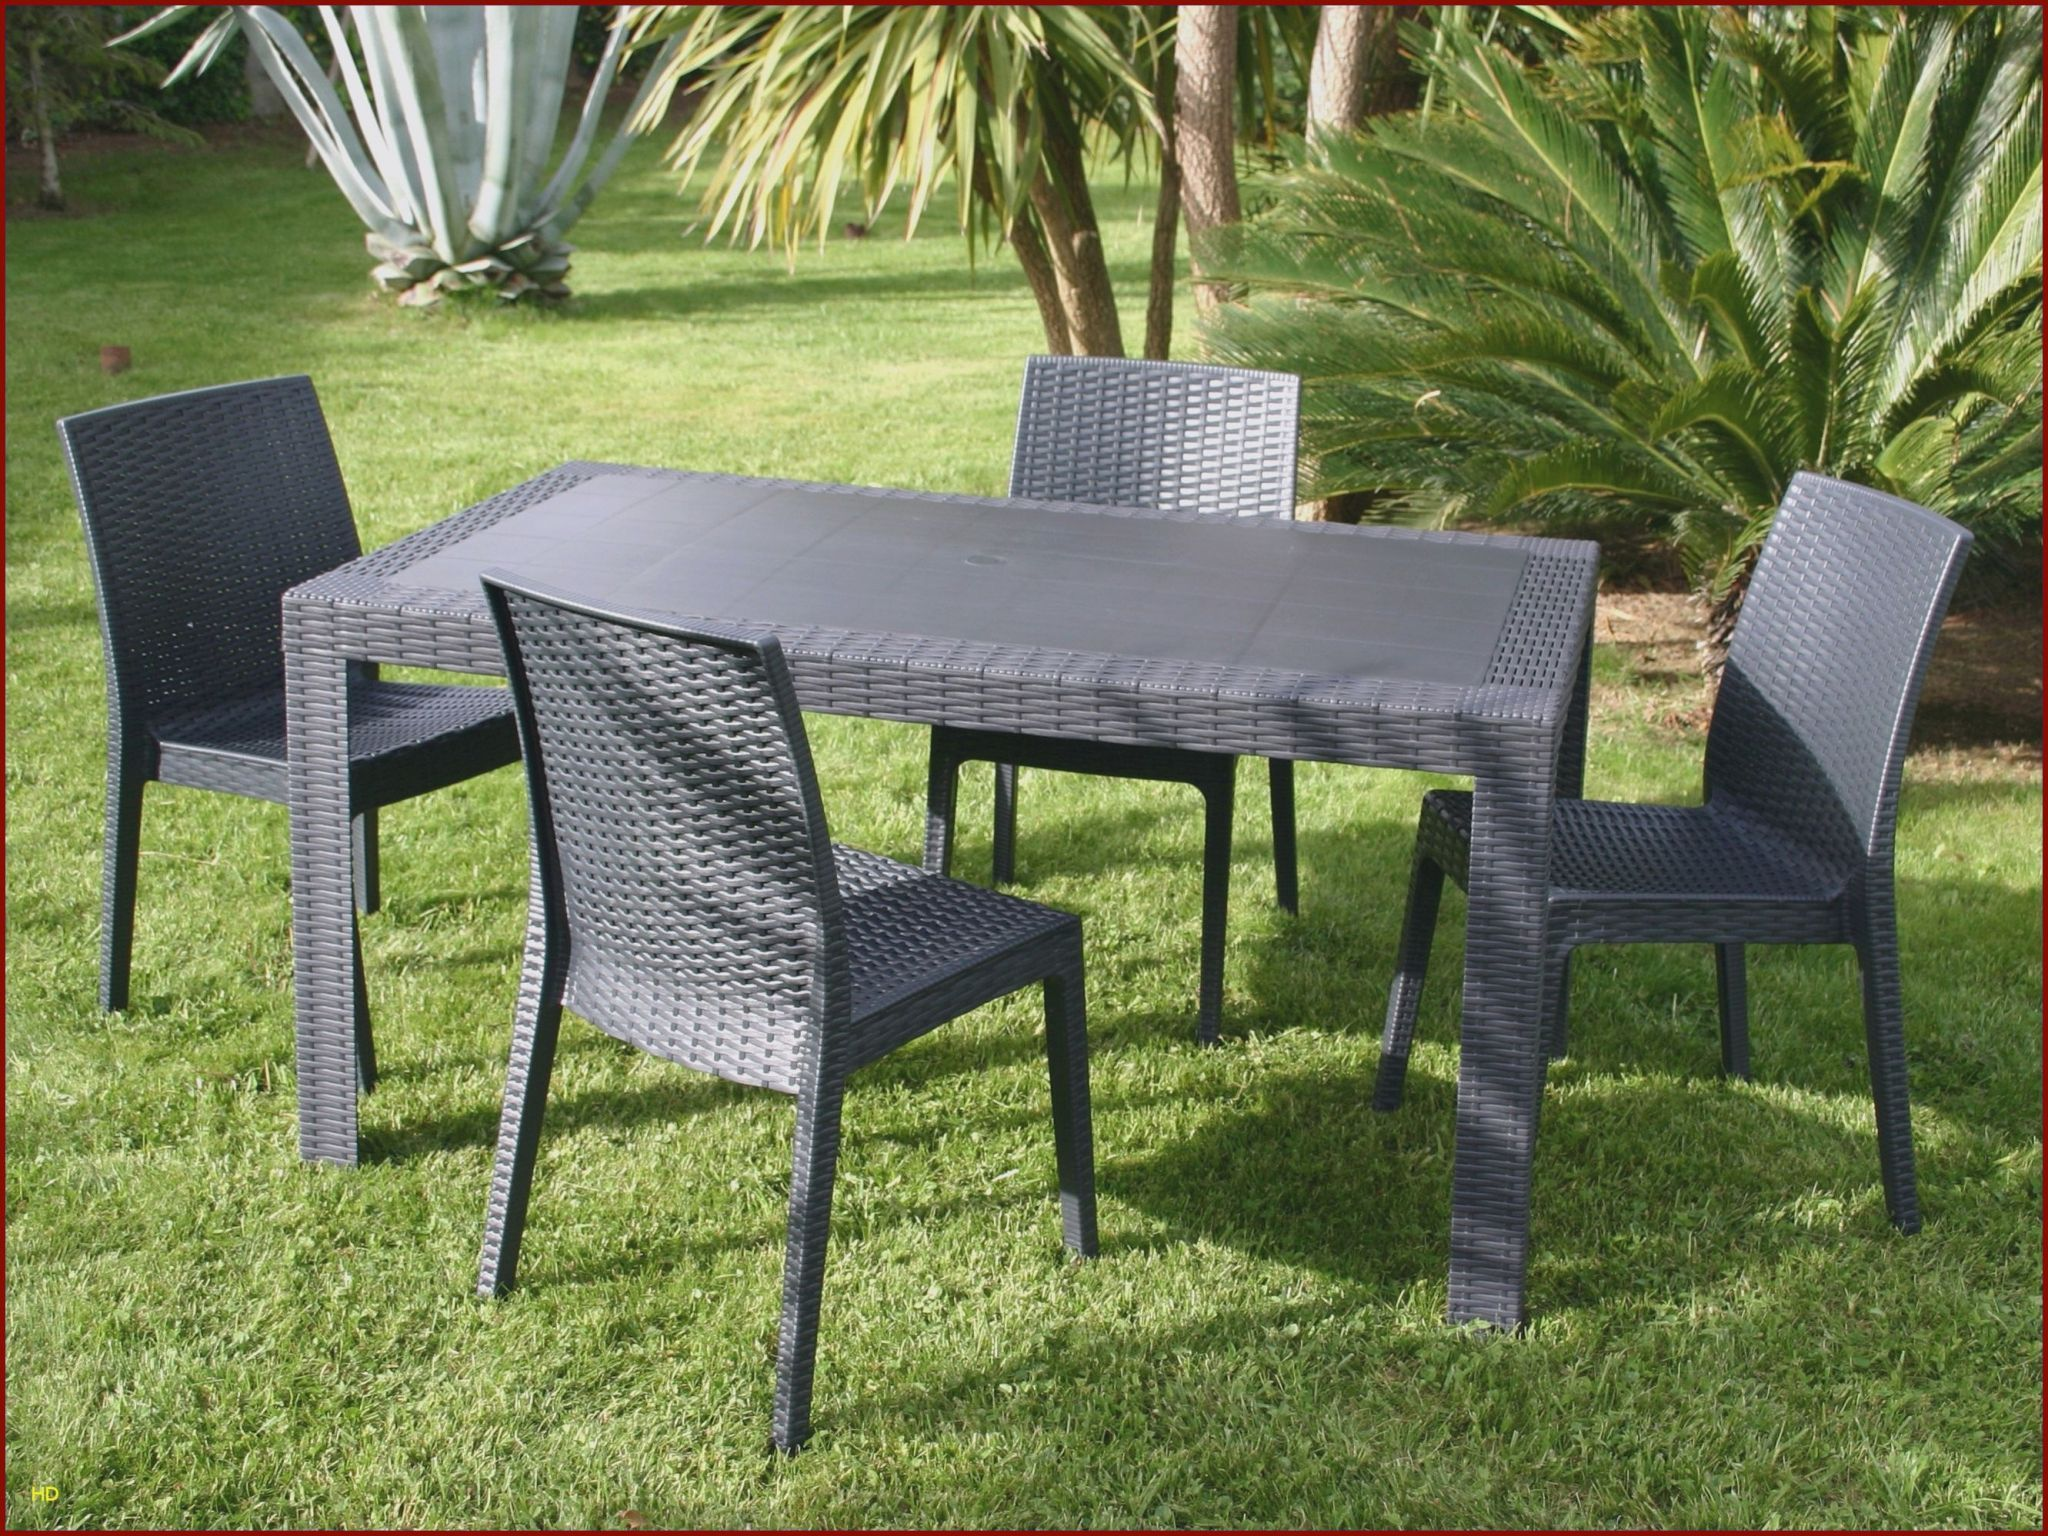 Table Et Chaise Exterieur Frais Chaises Luxe Chaise Ice 0d Table Jardin Resine Lovely Of 25 Élégant Table Et Chaise Exterieur